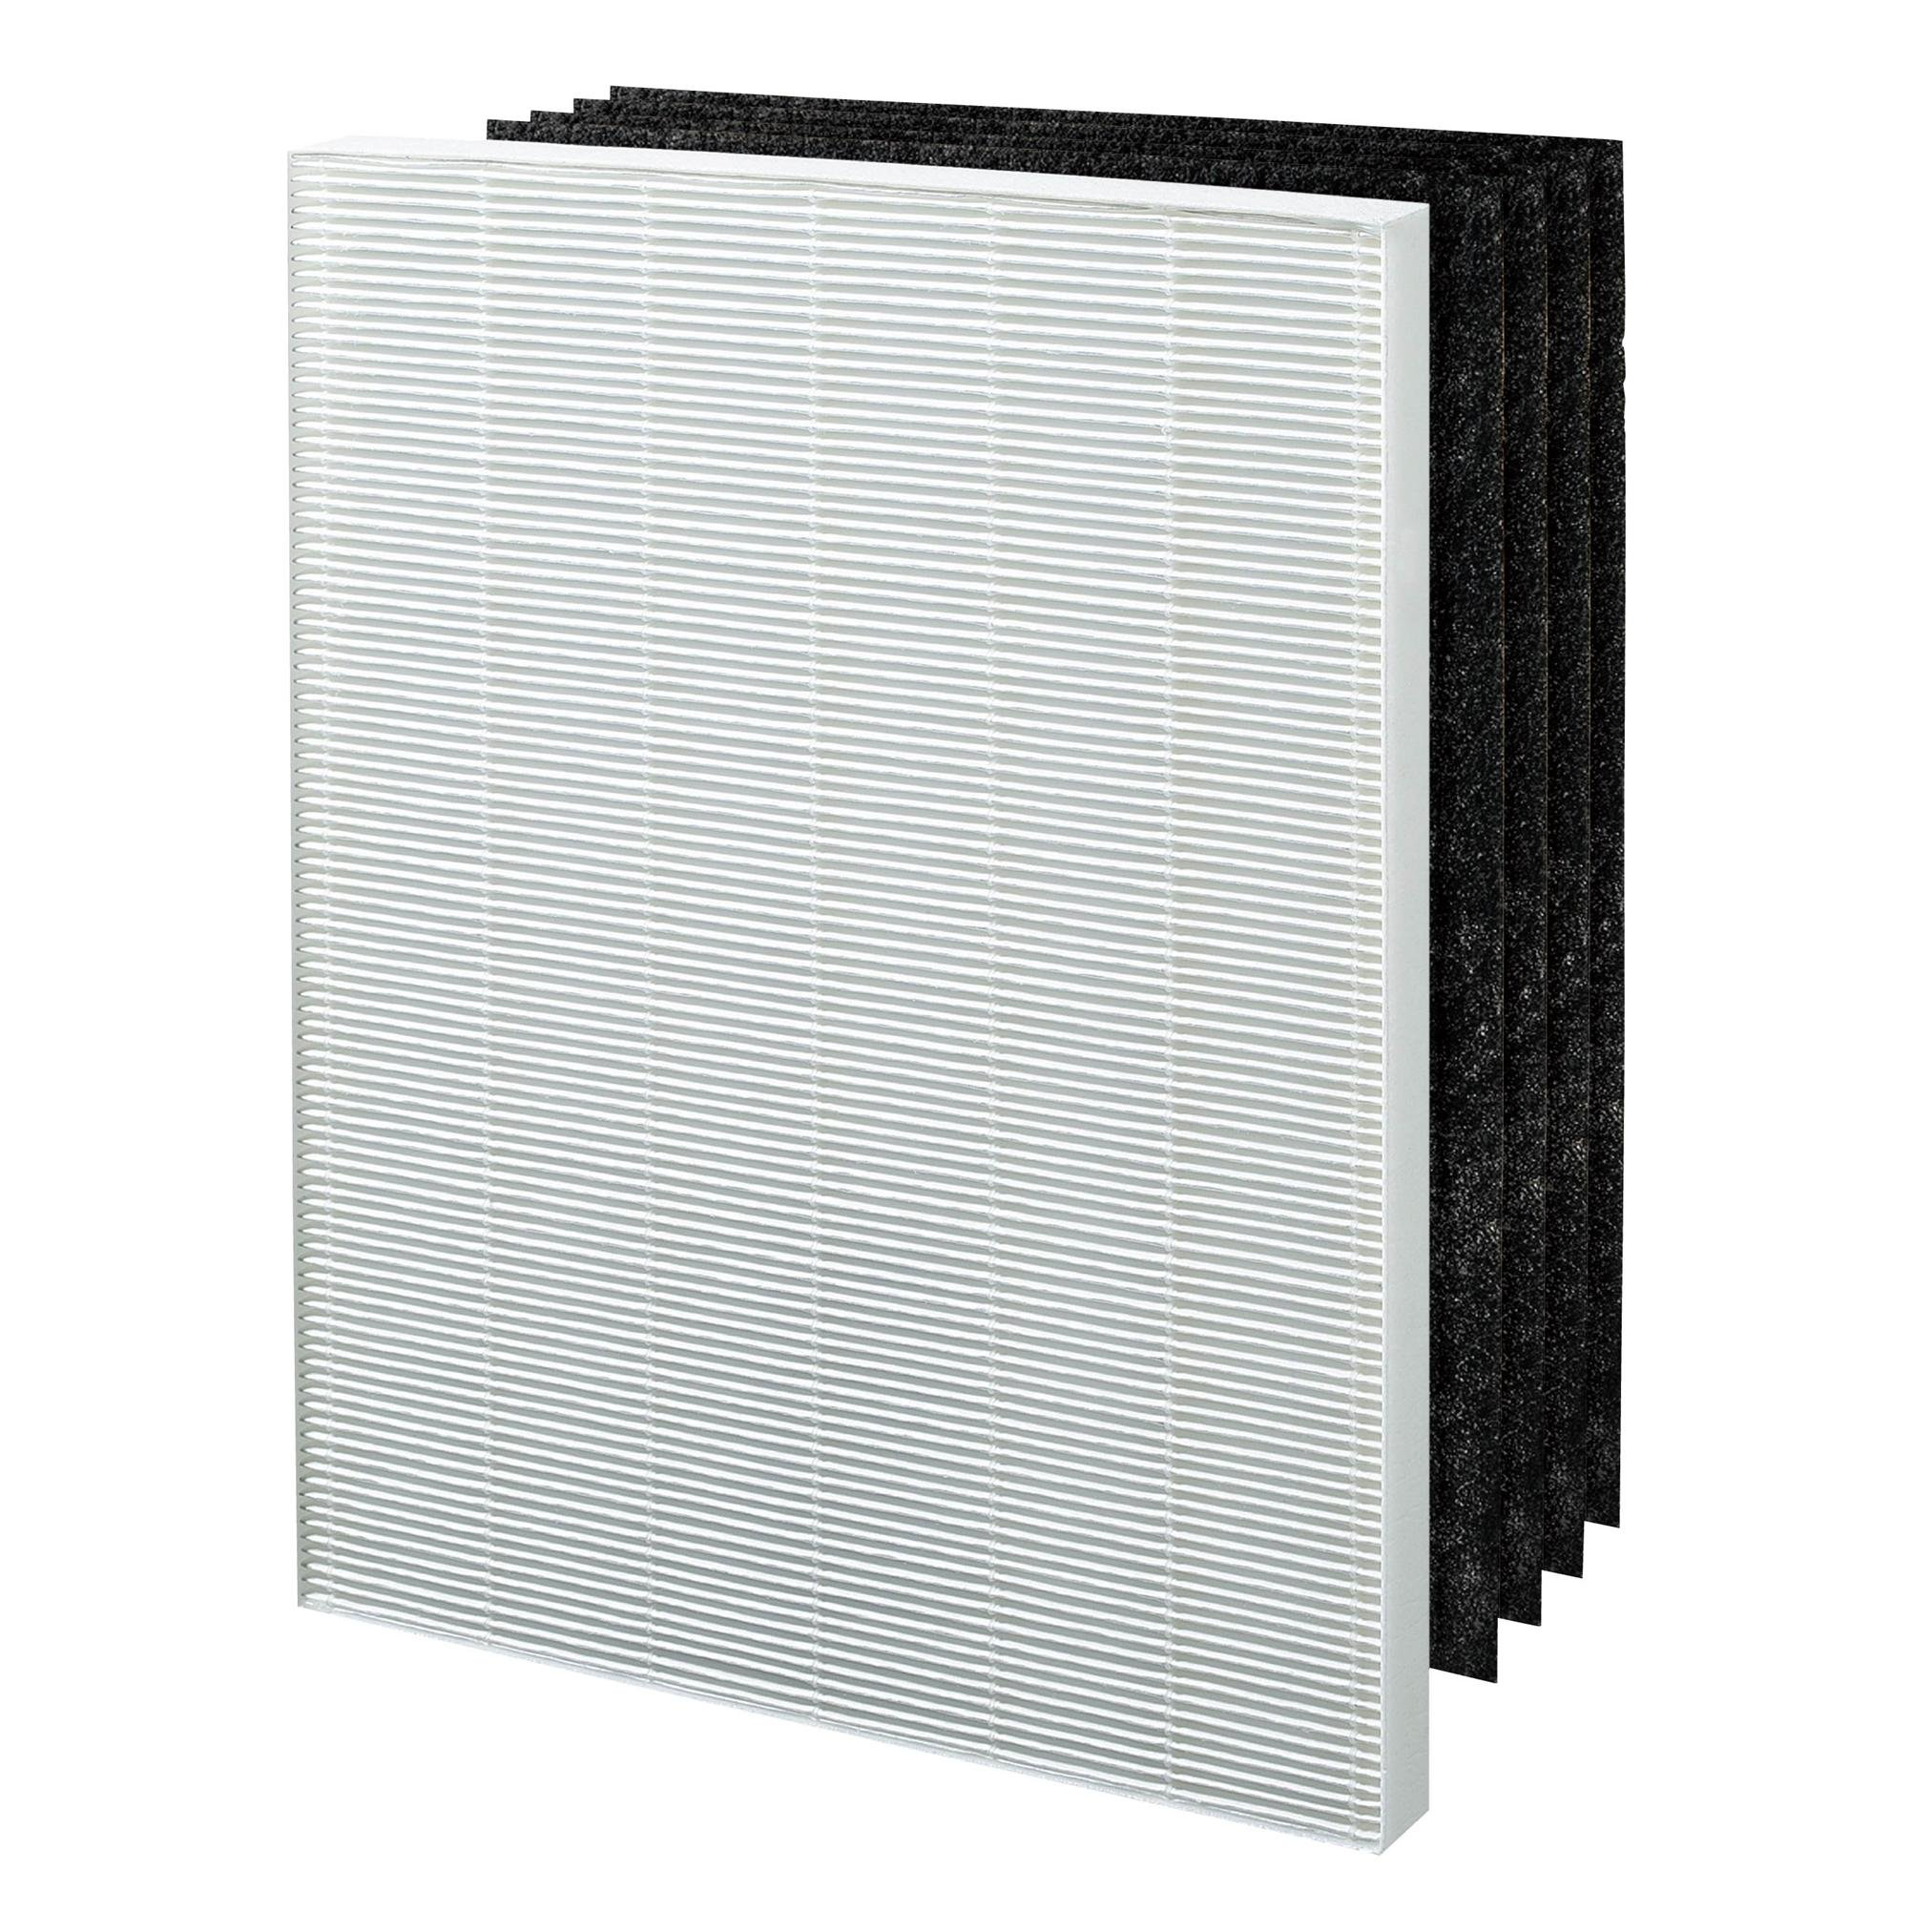 Winix 115115 Replacement Filter A